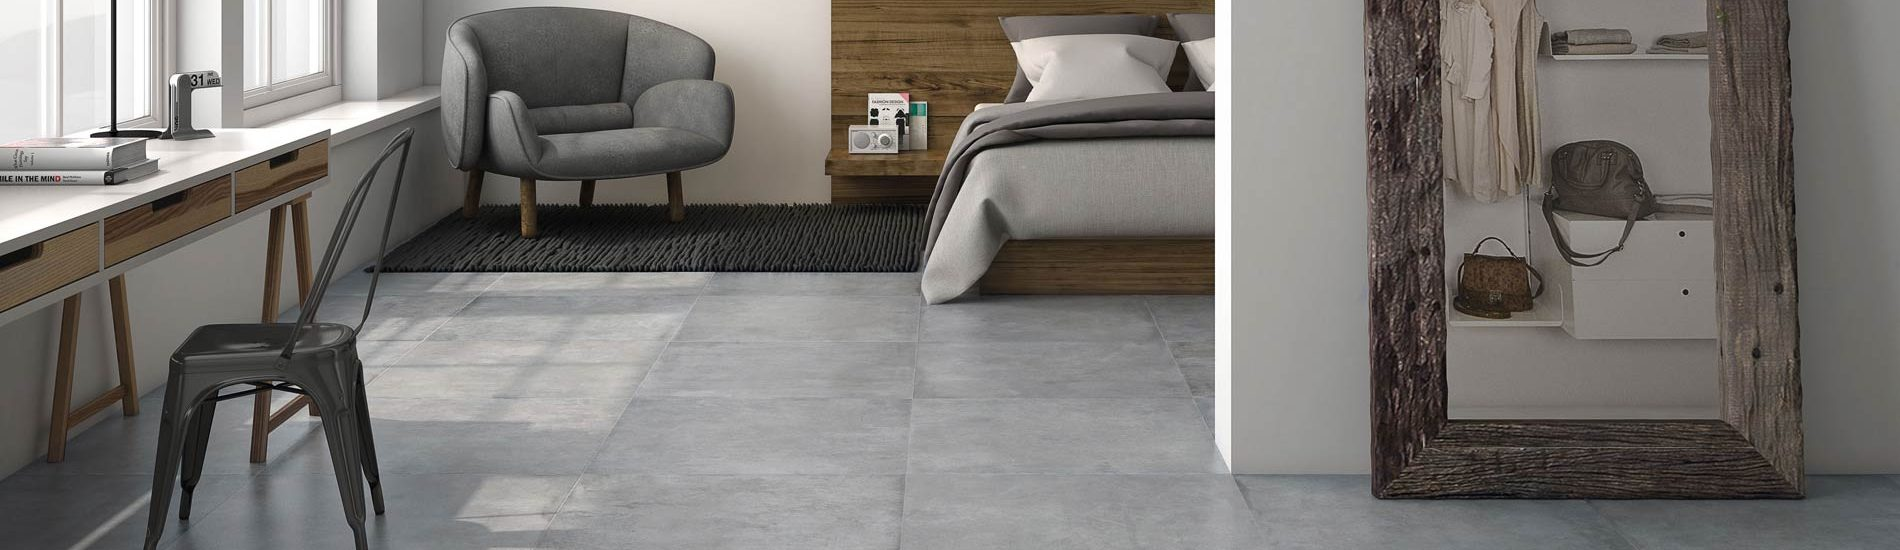 banner-limestone-spanish-limestone-look-large-format-floor-wall-tile